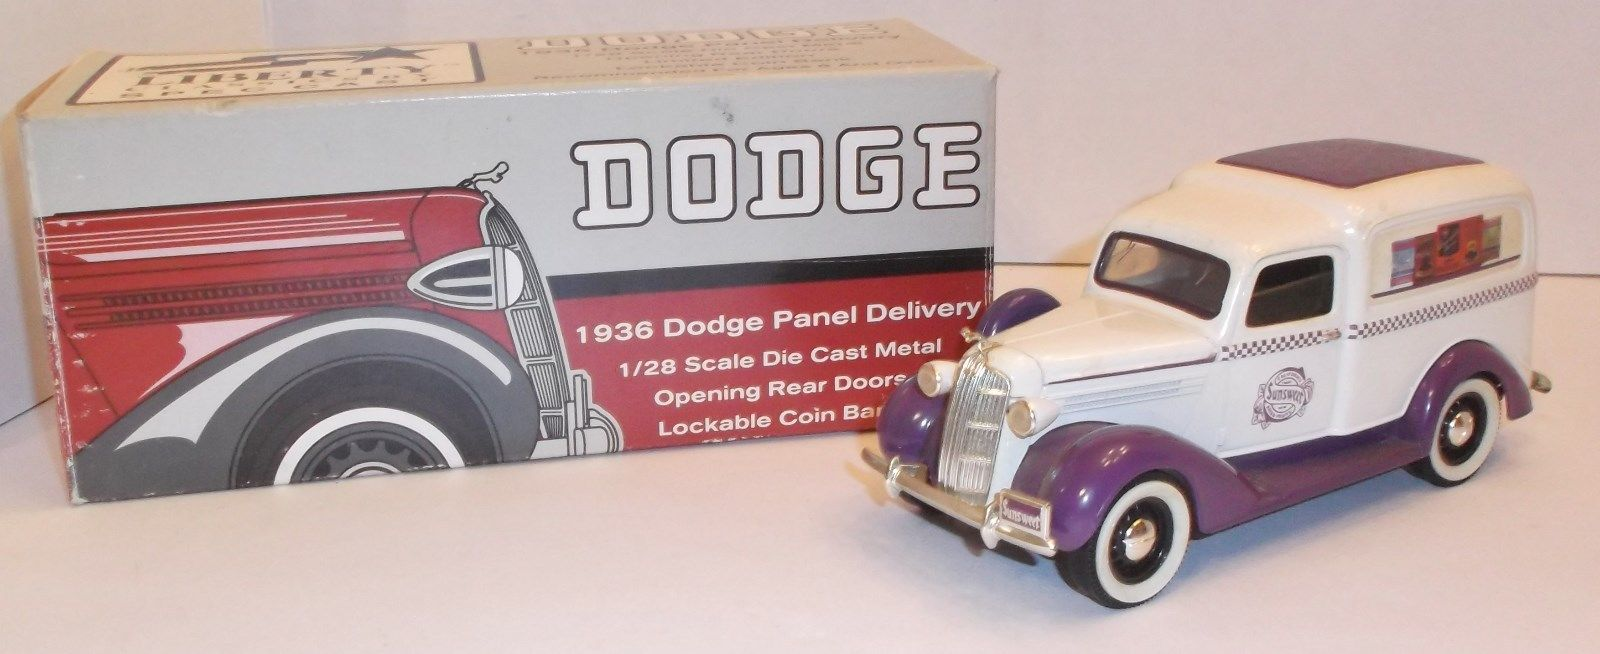 LIBERTY 1936 Dodge Panel Delivery Truck BANK Sunsweet Die-Cast Mint Boxed 1:28